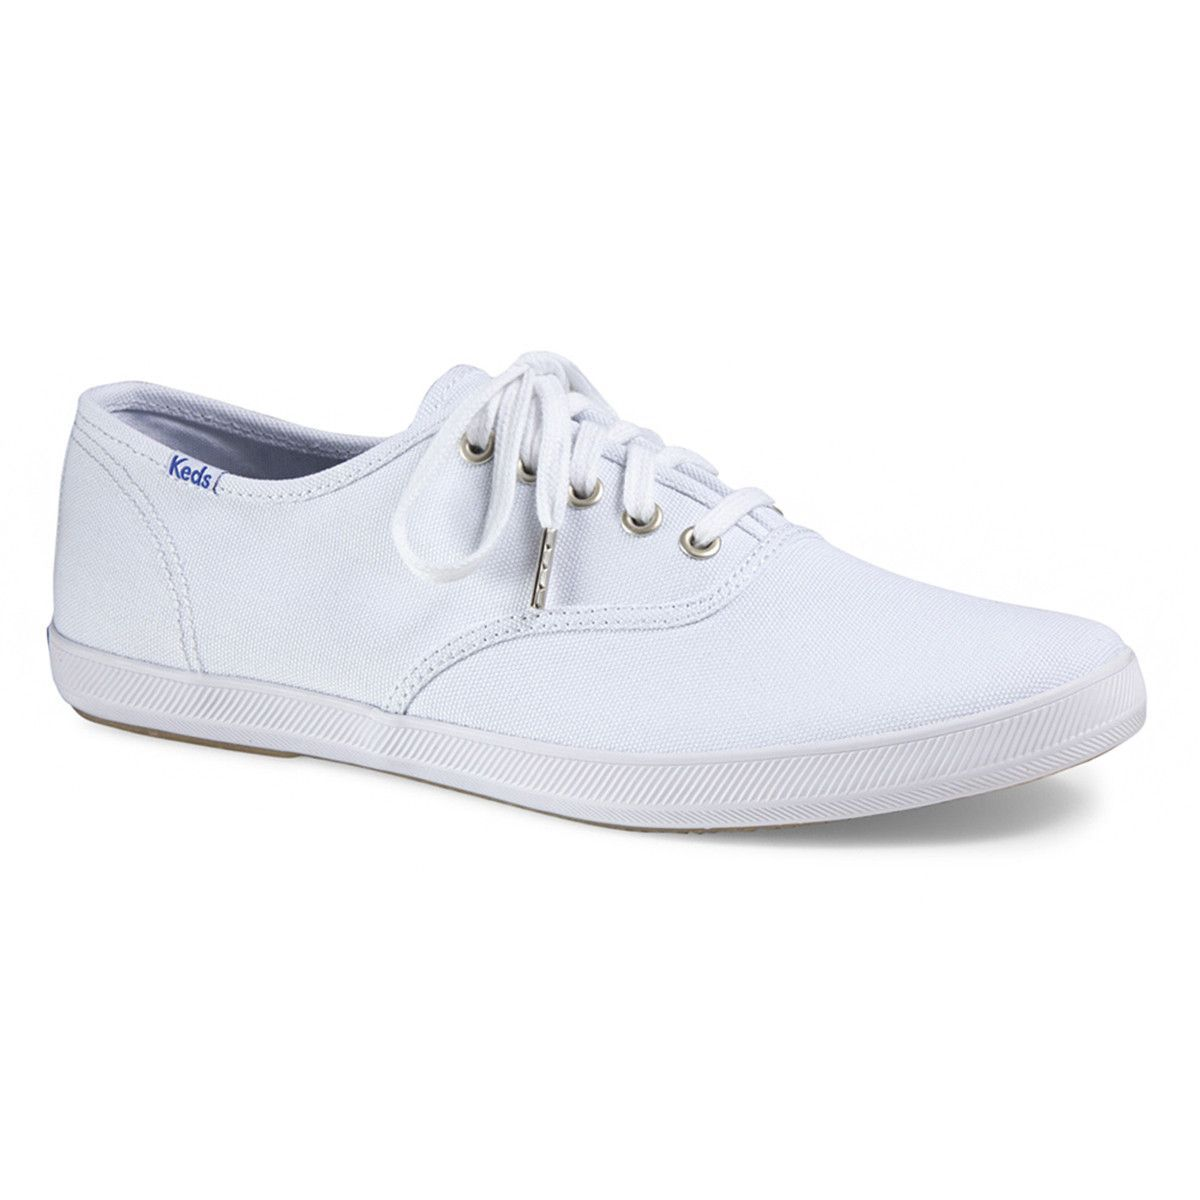 c346ded6ac5 Keds - Men s Champion Sneakers - White